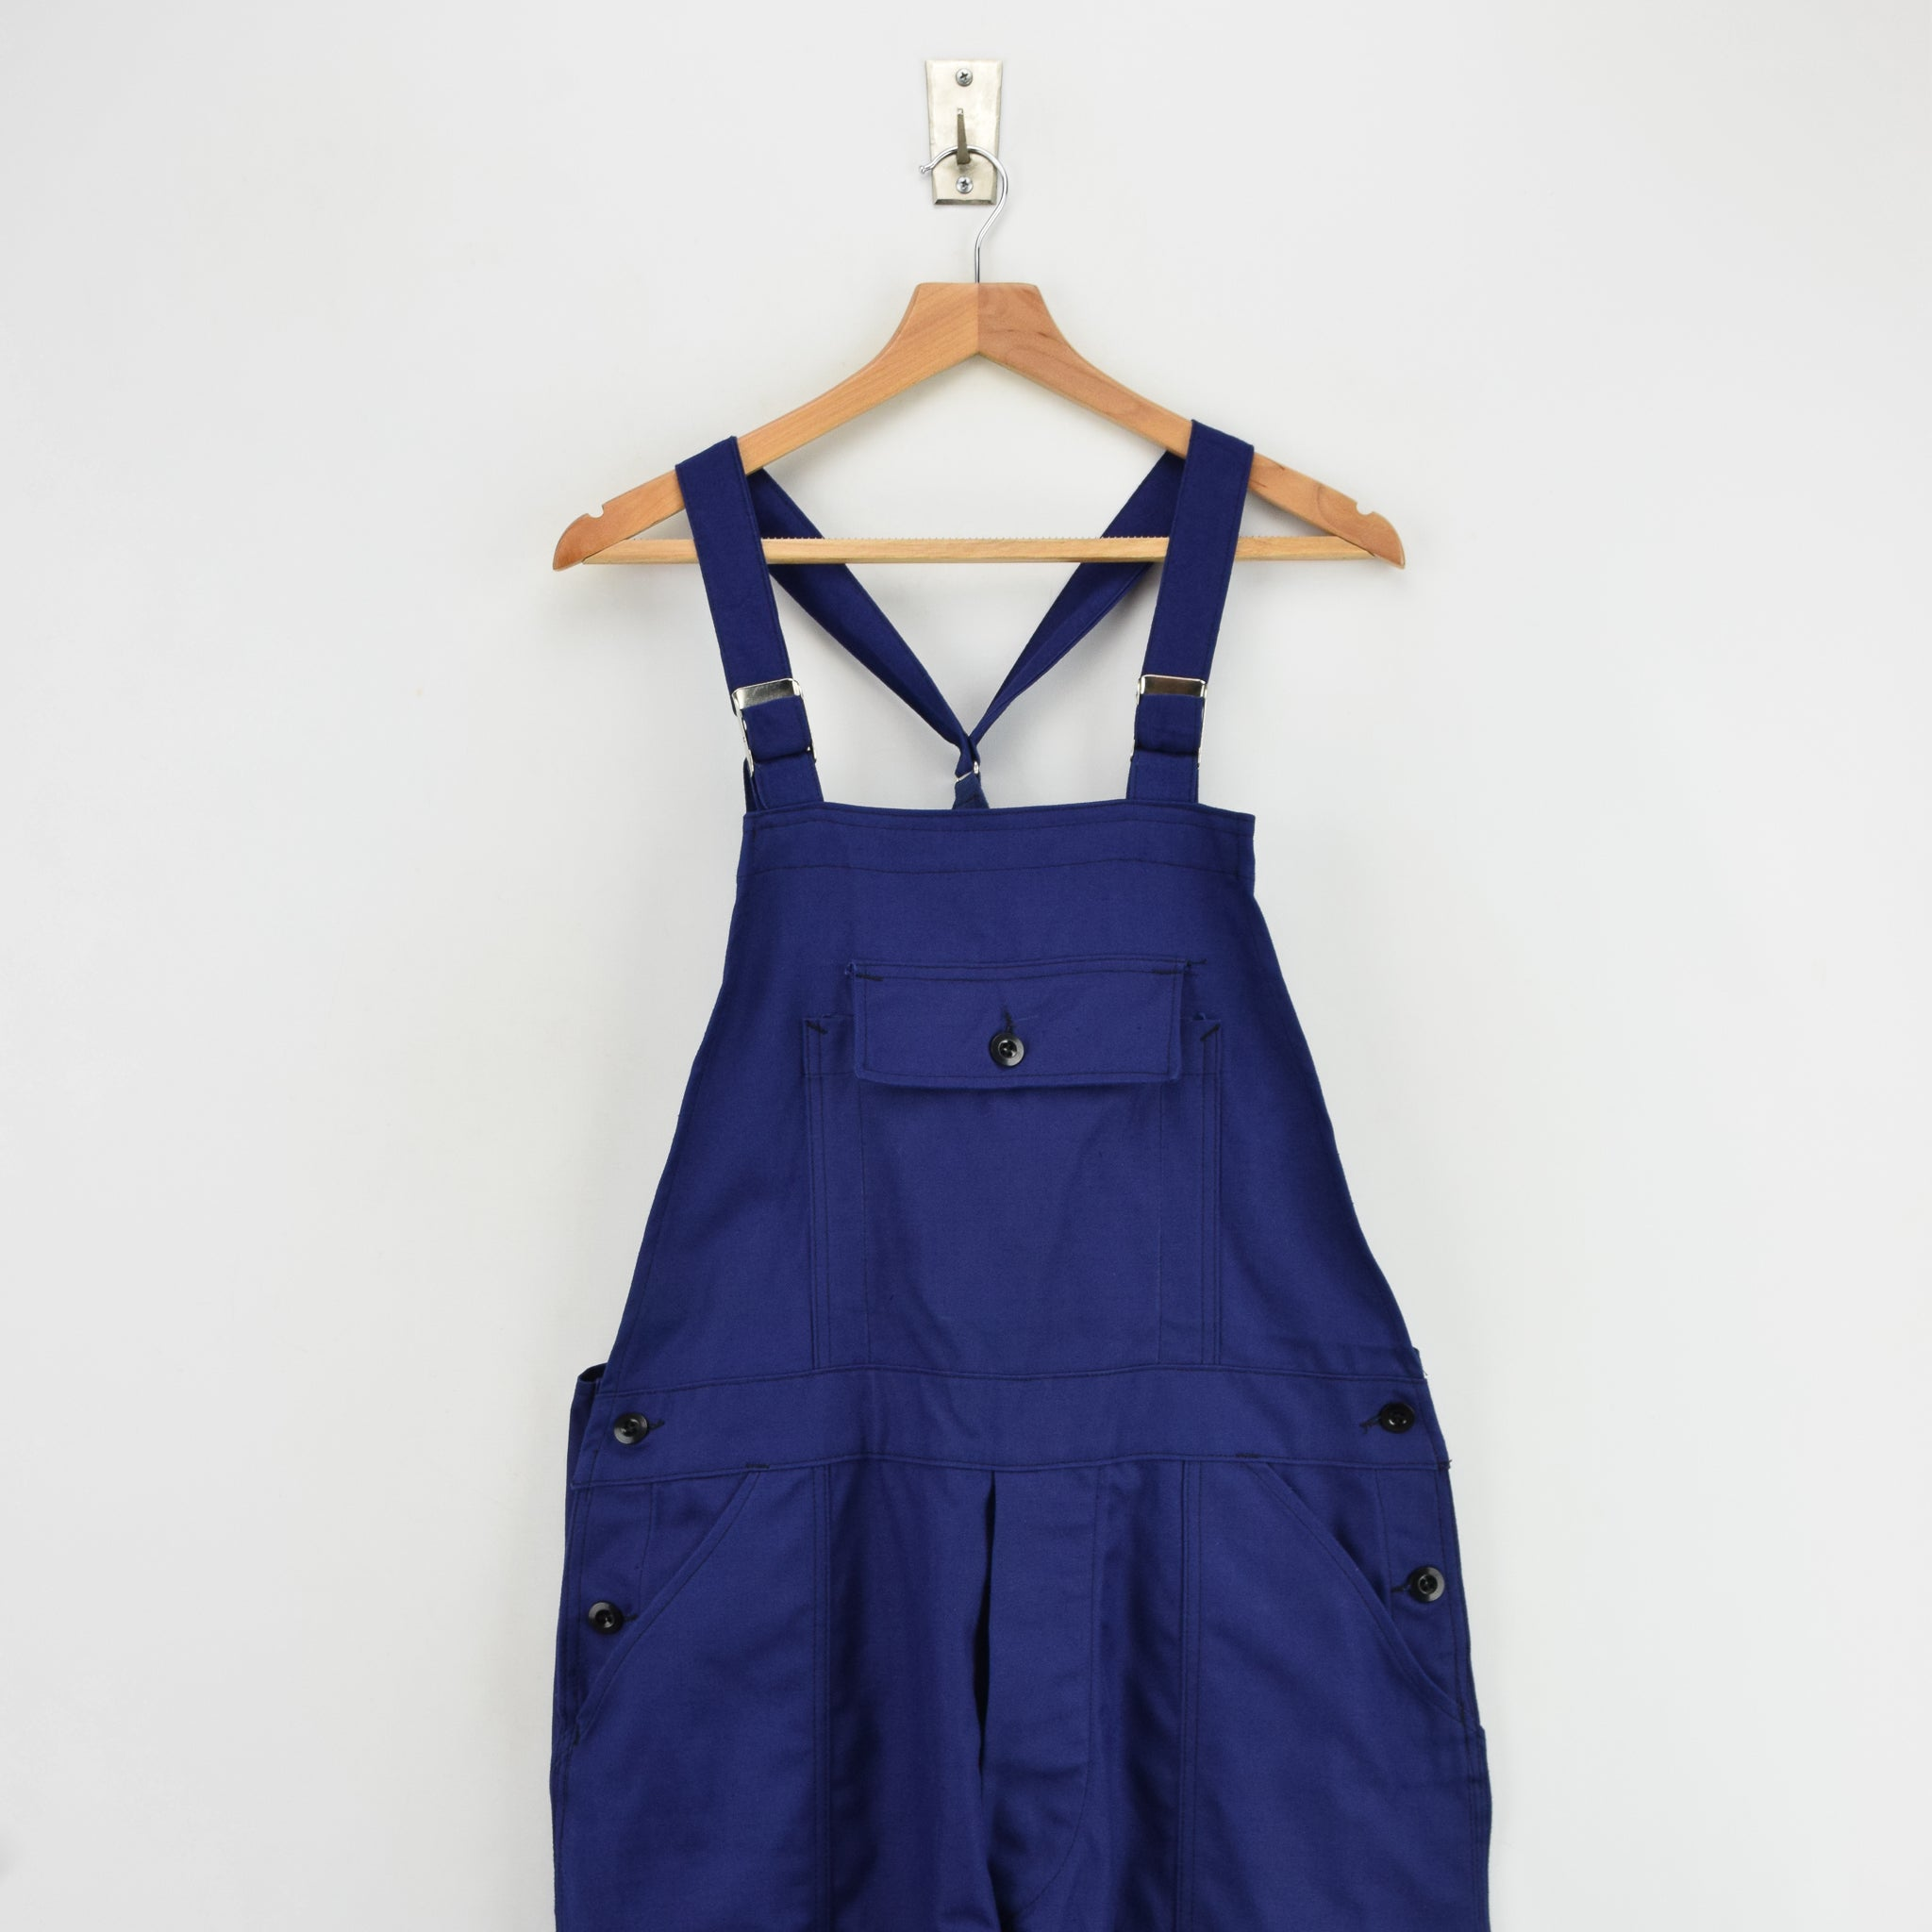 Vintage French Deadstock Workwear Dungarees Indigo Blue Overalls Trousers S front